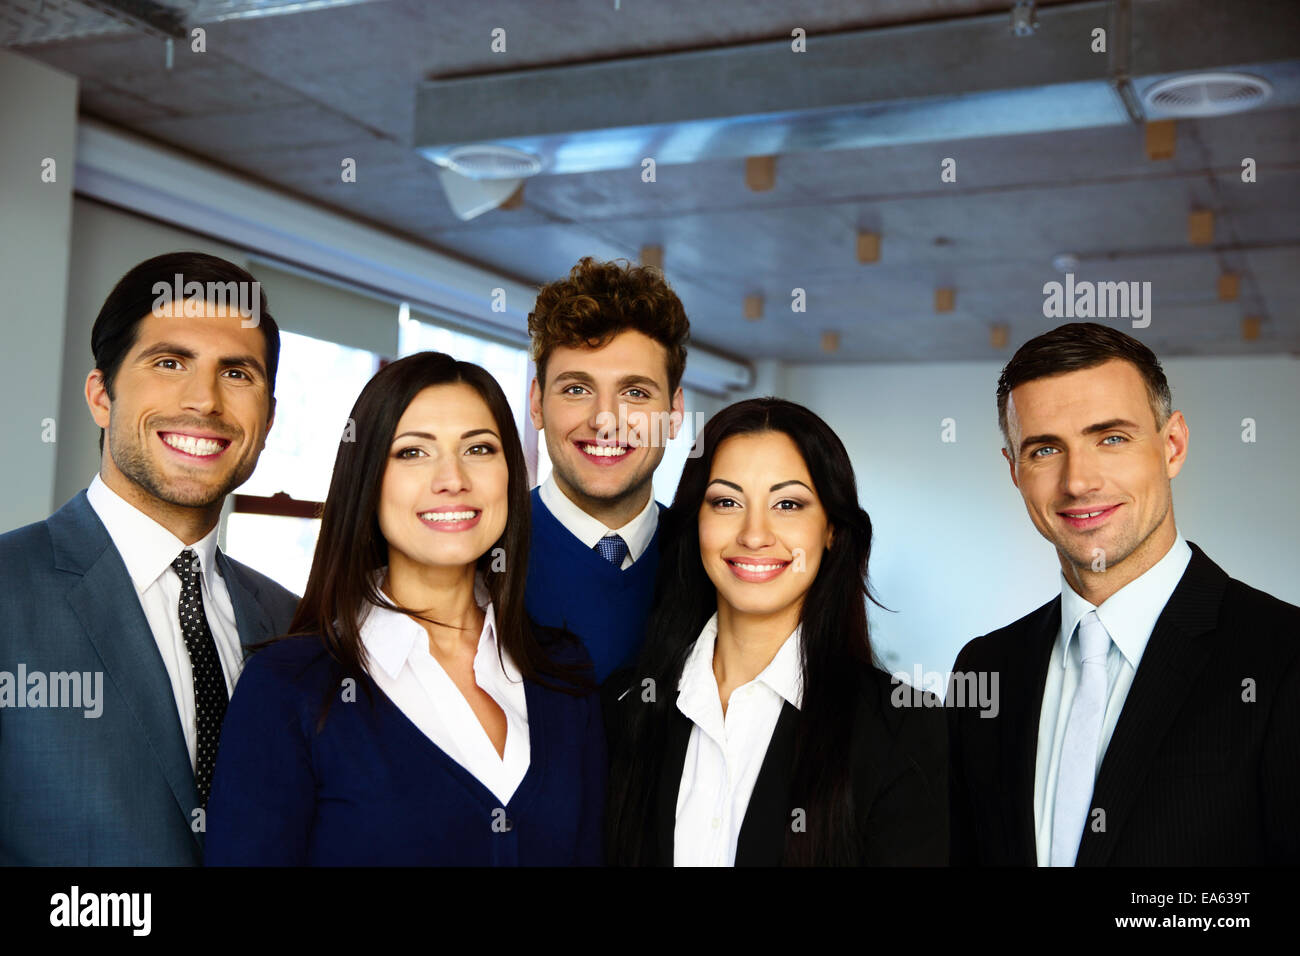 Group of a happy business people standing together in office - Stock Image